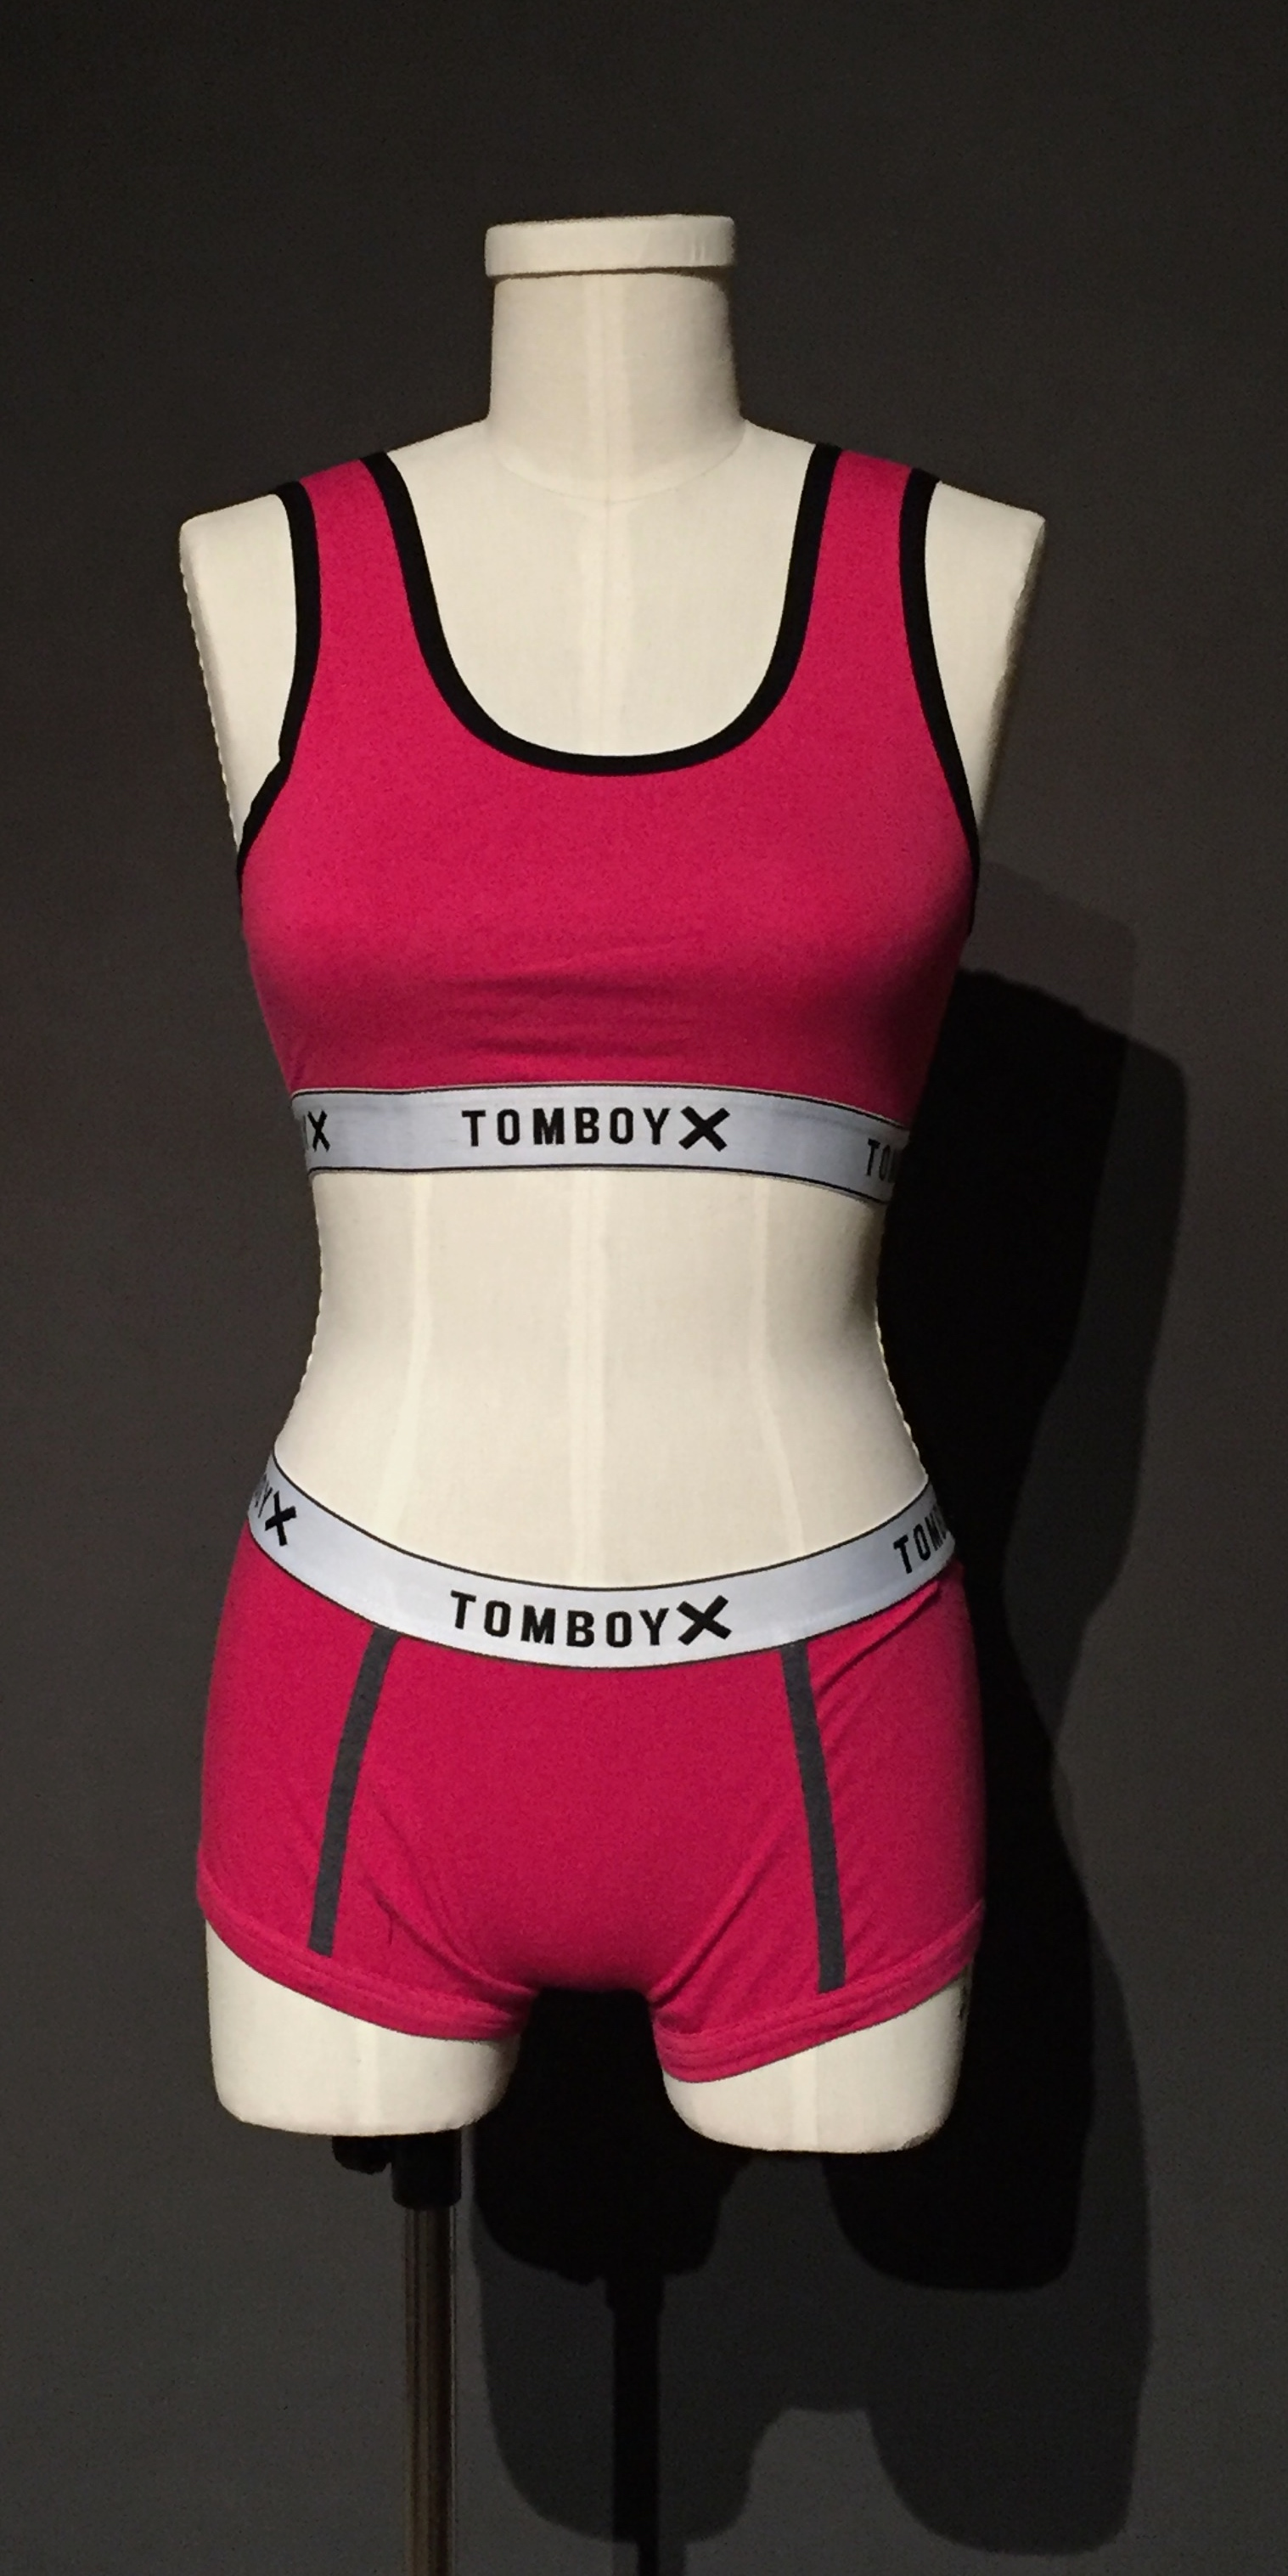 """- Pink sports bra and boxer brief;Owner – TomBoyX;2017""""We wanted to be that brand that, that lets you be unapologetic about who you are, all day every day. Just to feel comfortable in your own skin."""" – personal interview with Fran Dunaway, founder of TomboyX, November 11, 2017""""I love seeing it every time someone posts that this is the thing that makes them feel comfortable in their own skin. And we're saying that again because that's literally the, that's what it is. It's, feeling empowered, and feeling really good about yourself. And, that's a challenge for a lot of people. So, if we can help in that."""" – personal interview with Naomi Gonzalez, founder of TomboyX, November 11, 2017"""